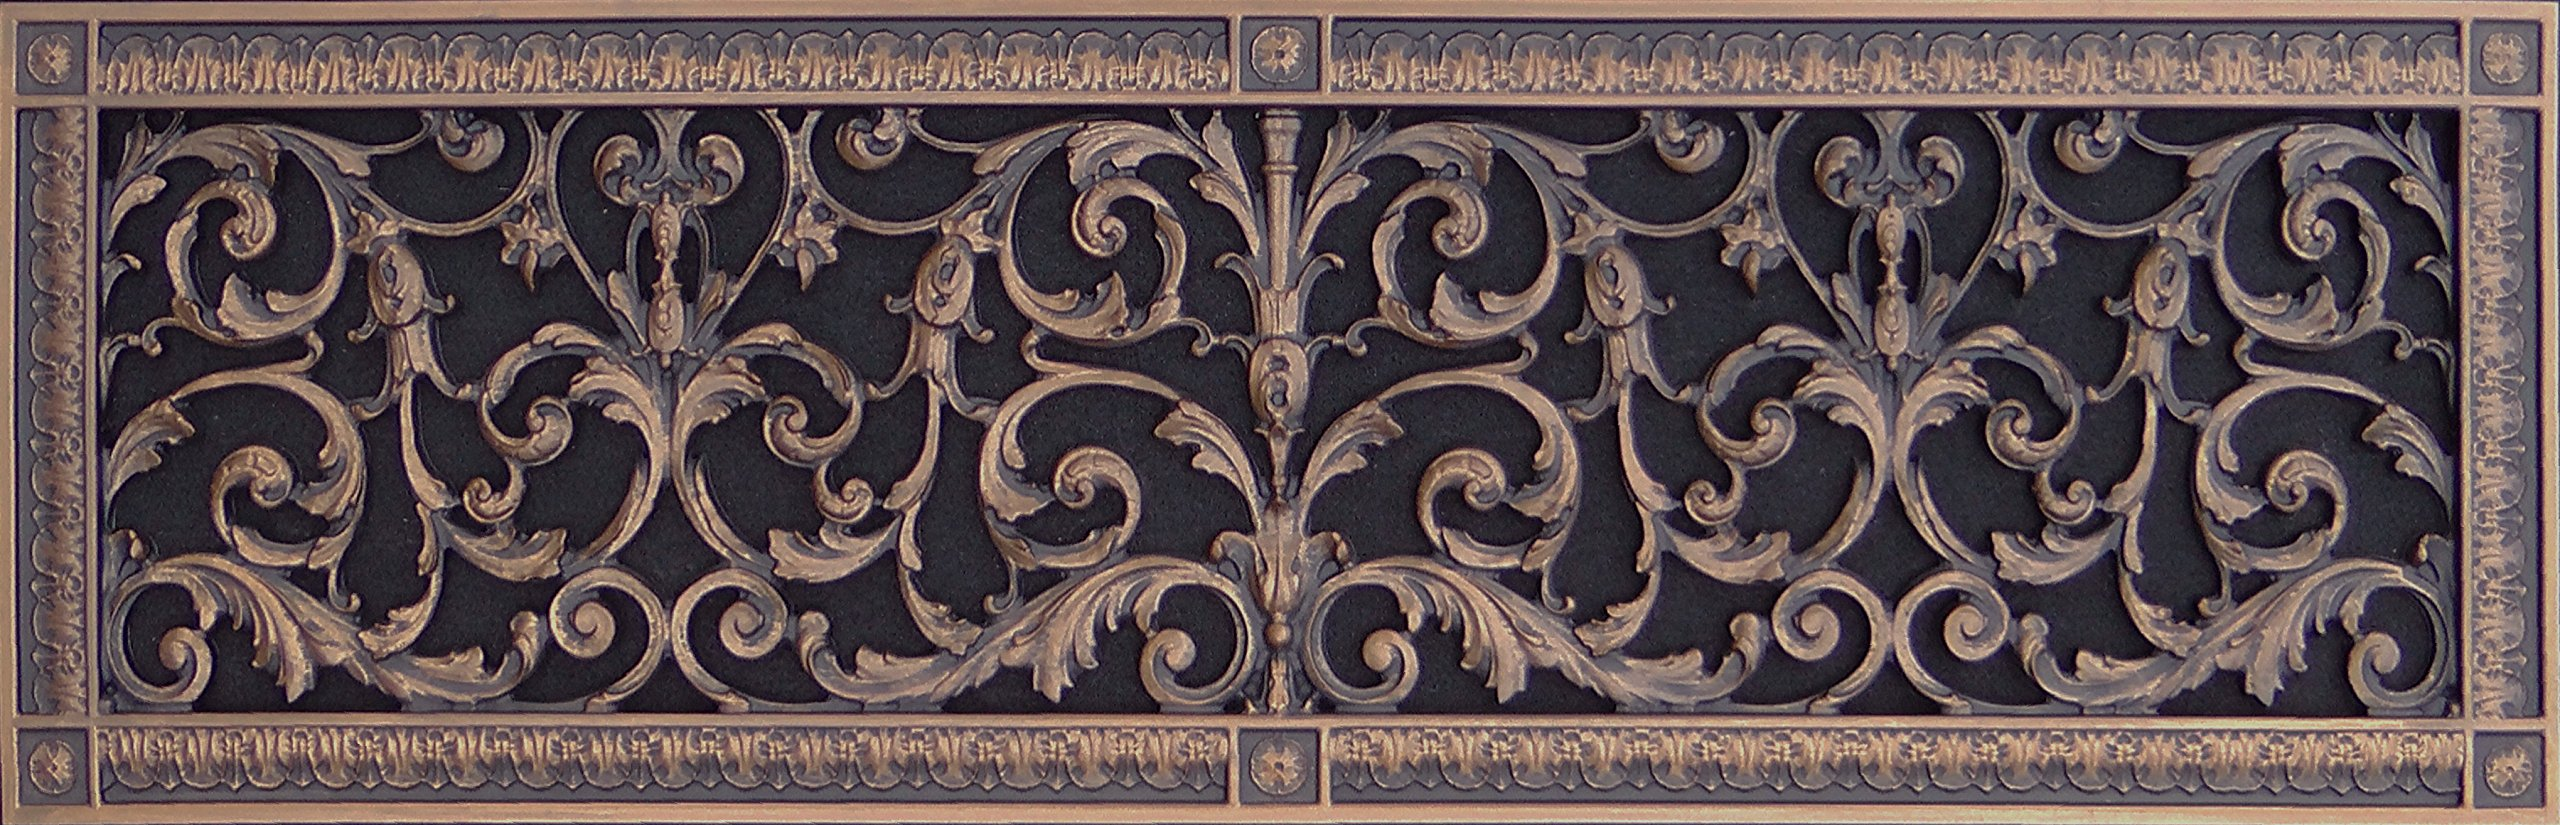 Decorative Vent Cover, Grille or Register, made of resin in Louis XIV style fits over a 8''x24'' duct opening. Total size is 10''x26'', for wall & ceiling installation only. Not for floors (Rubbed Bronze) by Beaux-Artes, Ltd.